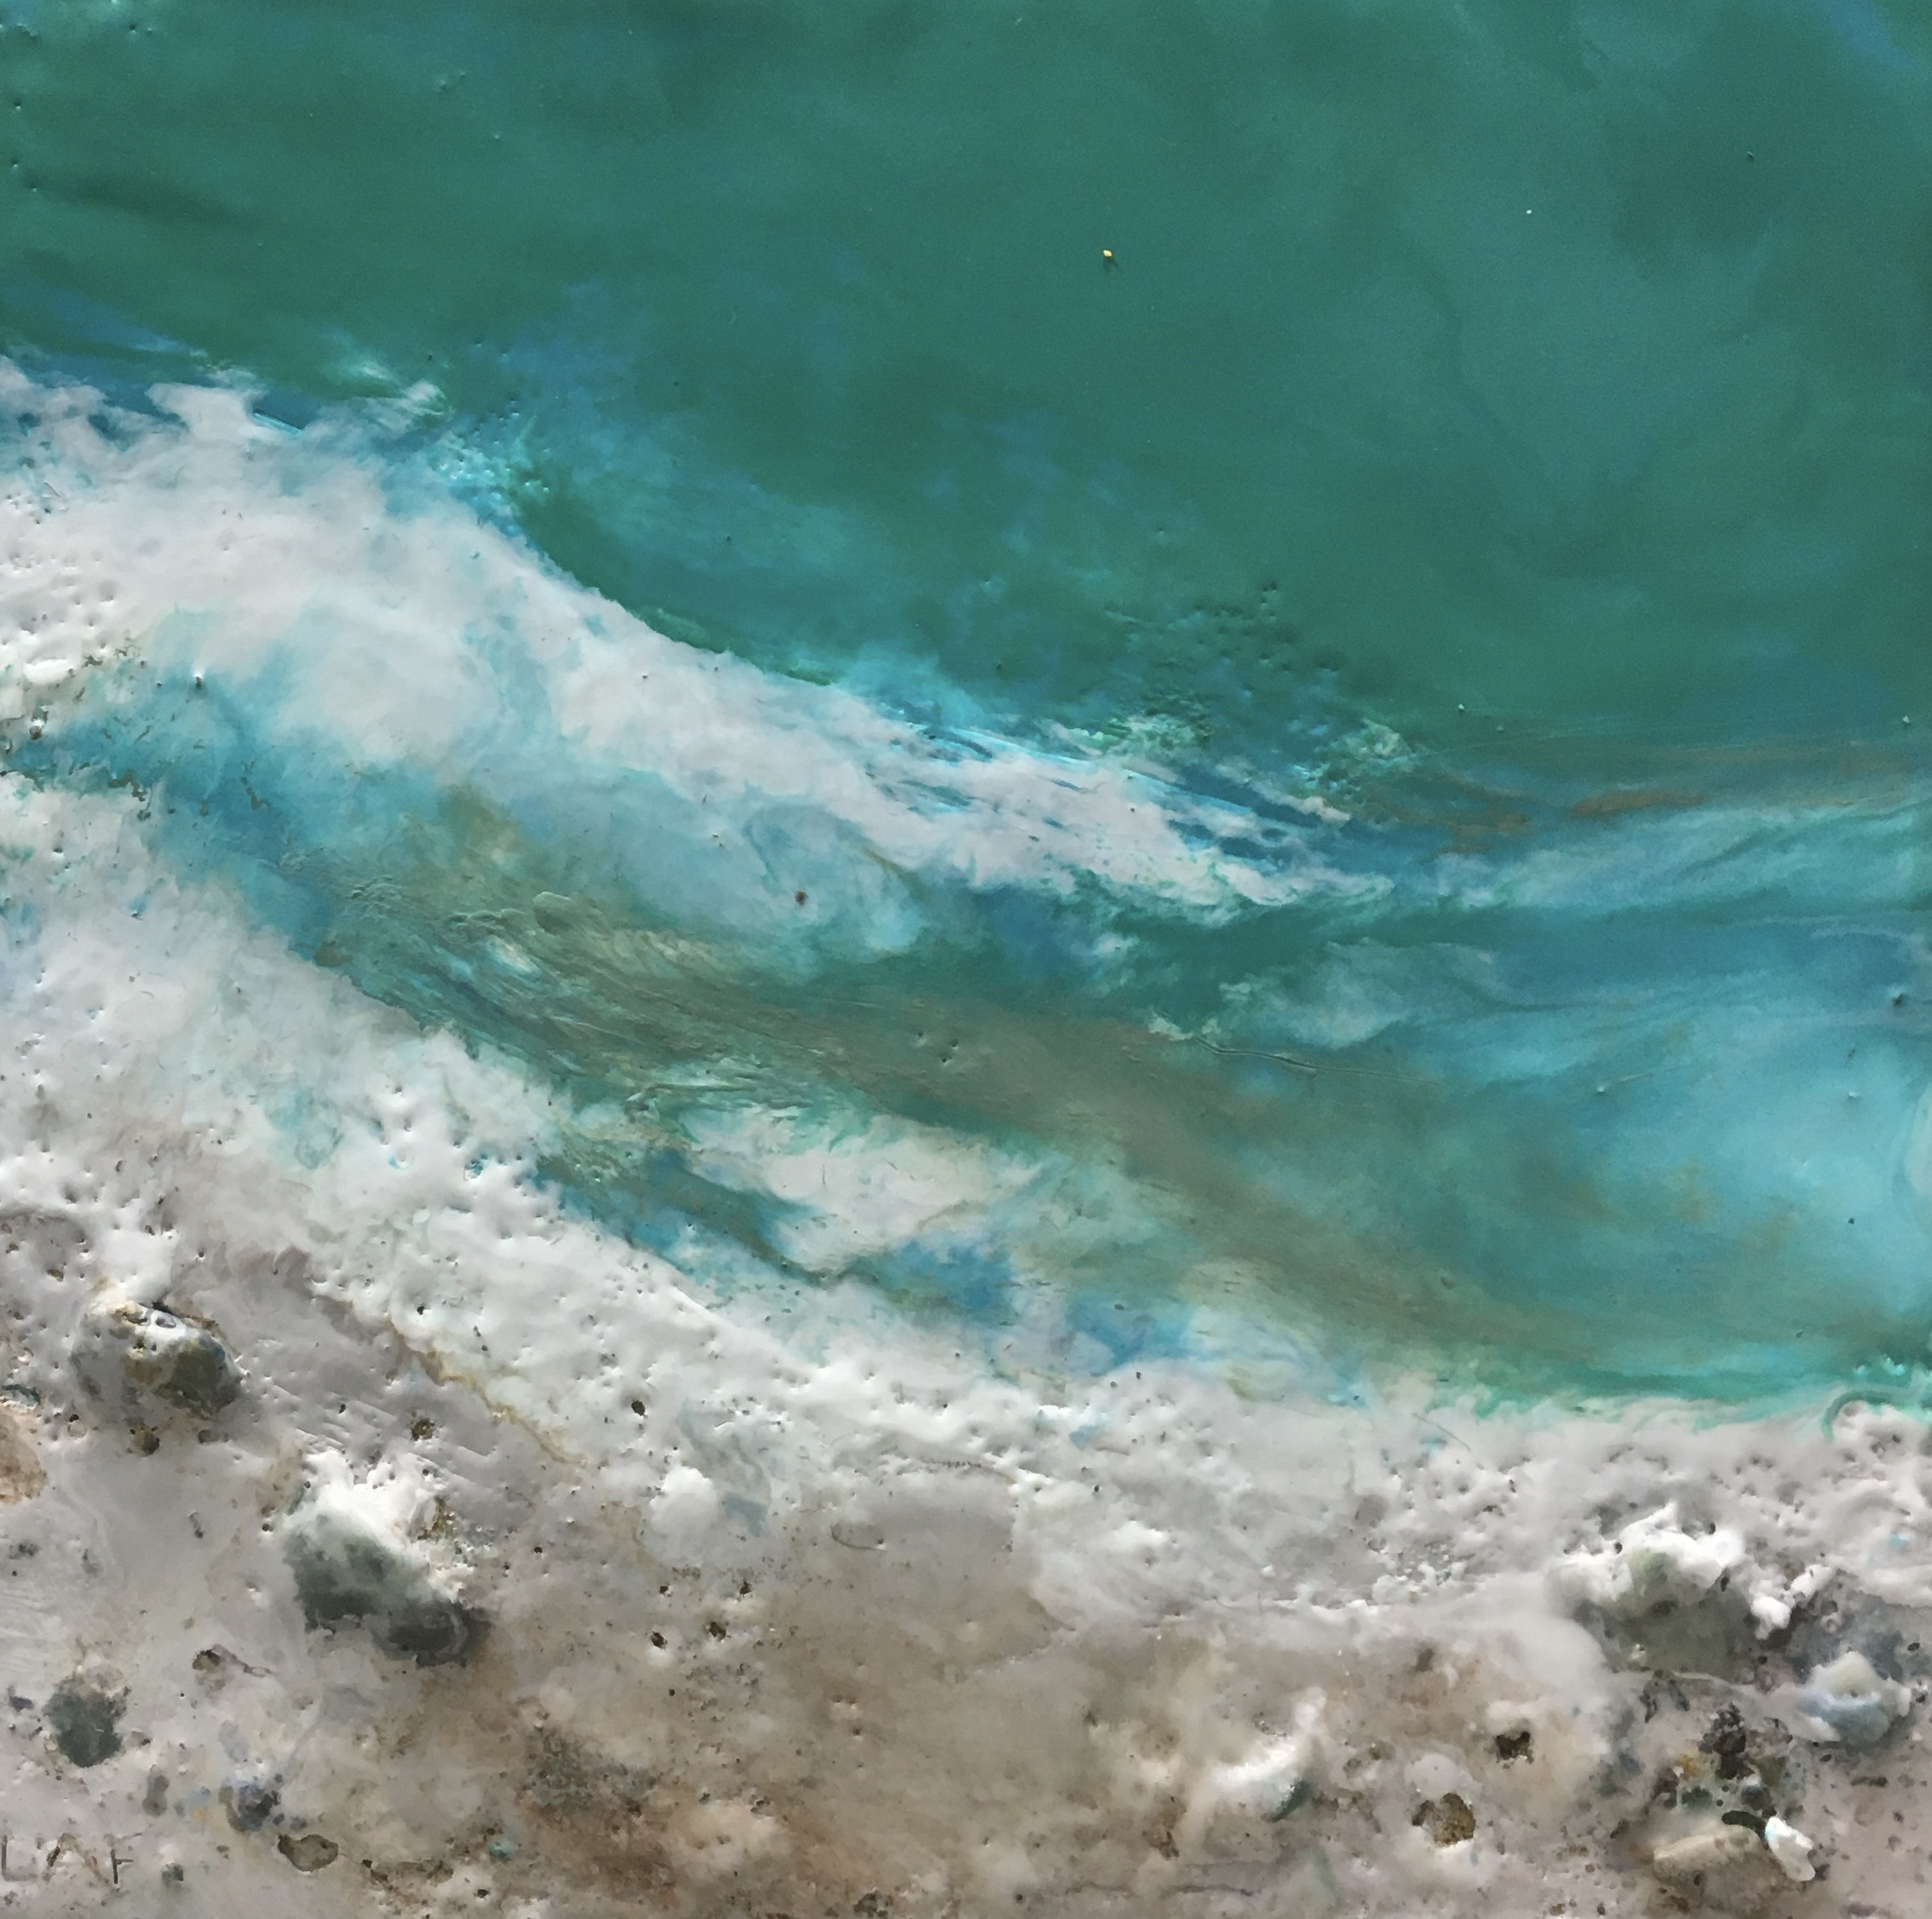 Warm Sea Breeze 2, encaustic ocean painting by Lee Anne LaForge | Effusion Art Gallery + Cast Glass Studio, Invermere BC